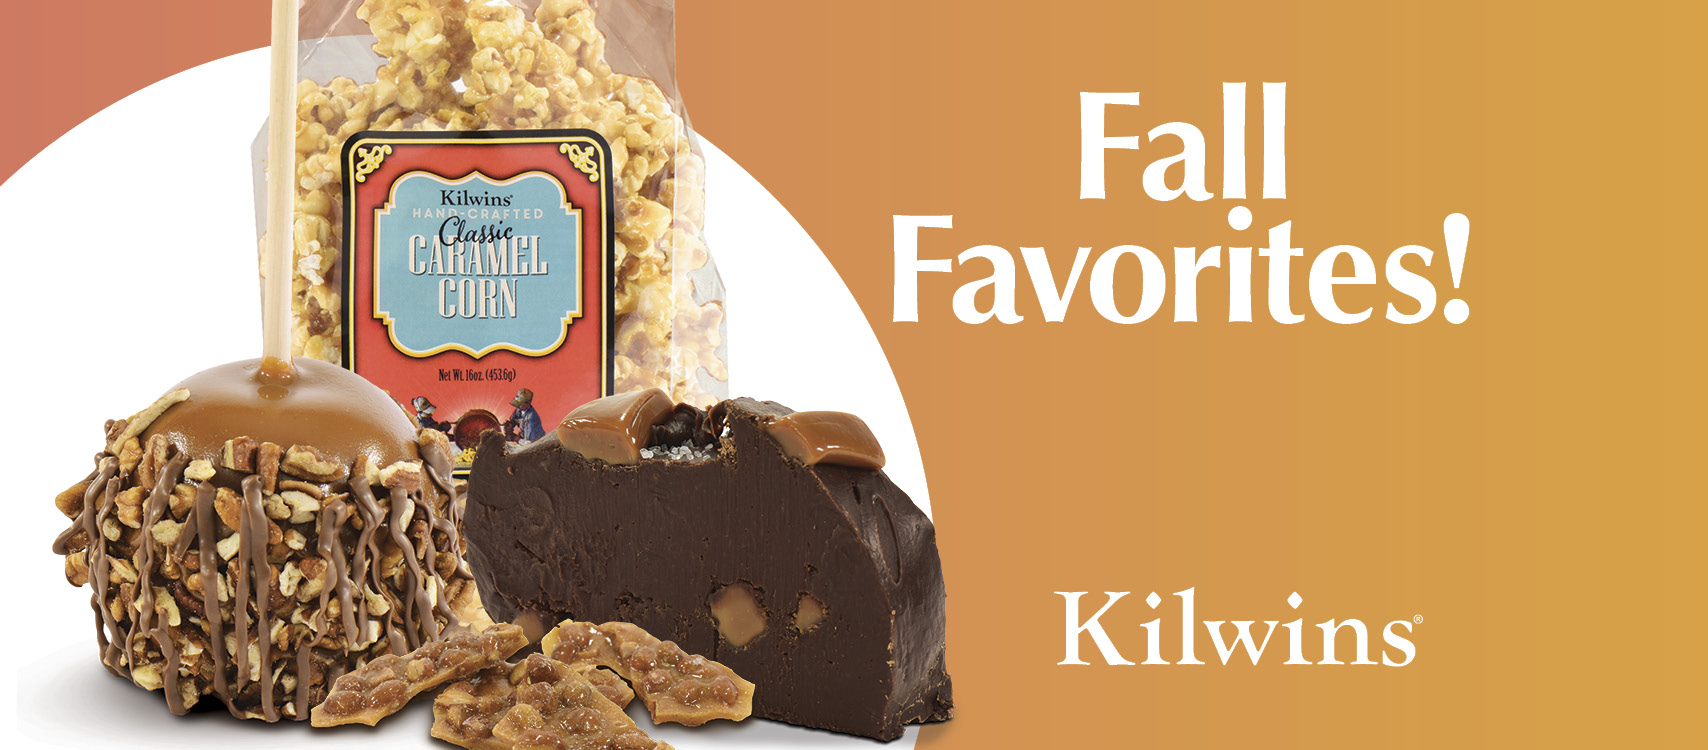 """Photo of Caramel Corn, Turtle Caramel Apple, Peanut Brittle, and Fudge with the words """"Fall Favorites!"""""""